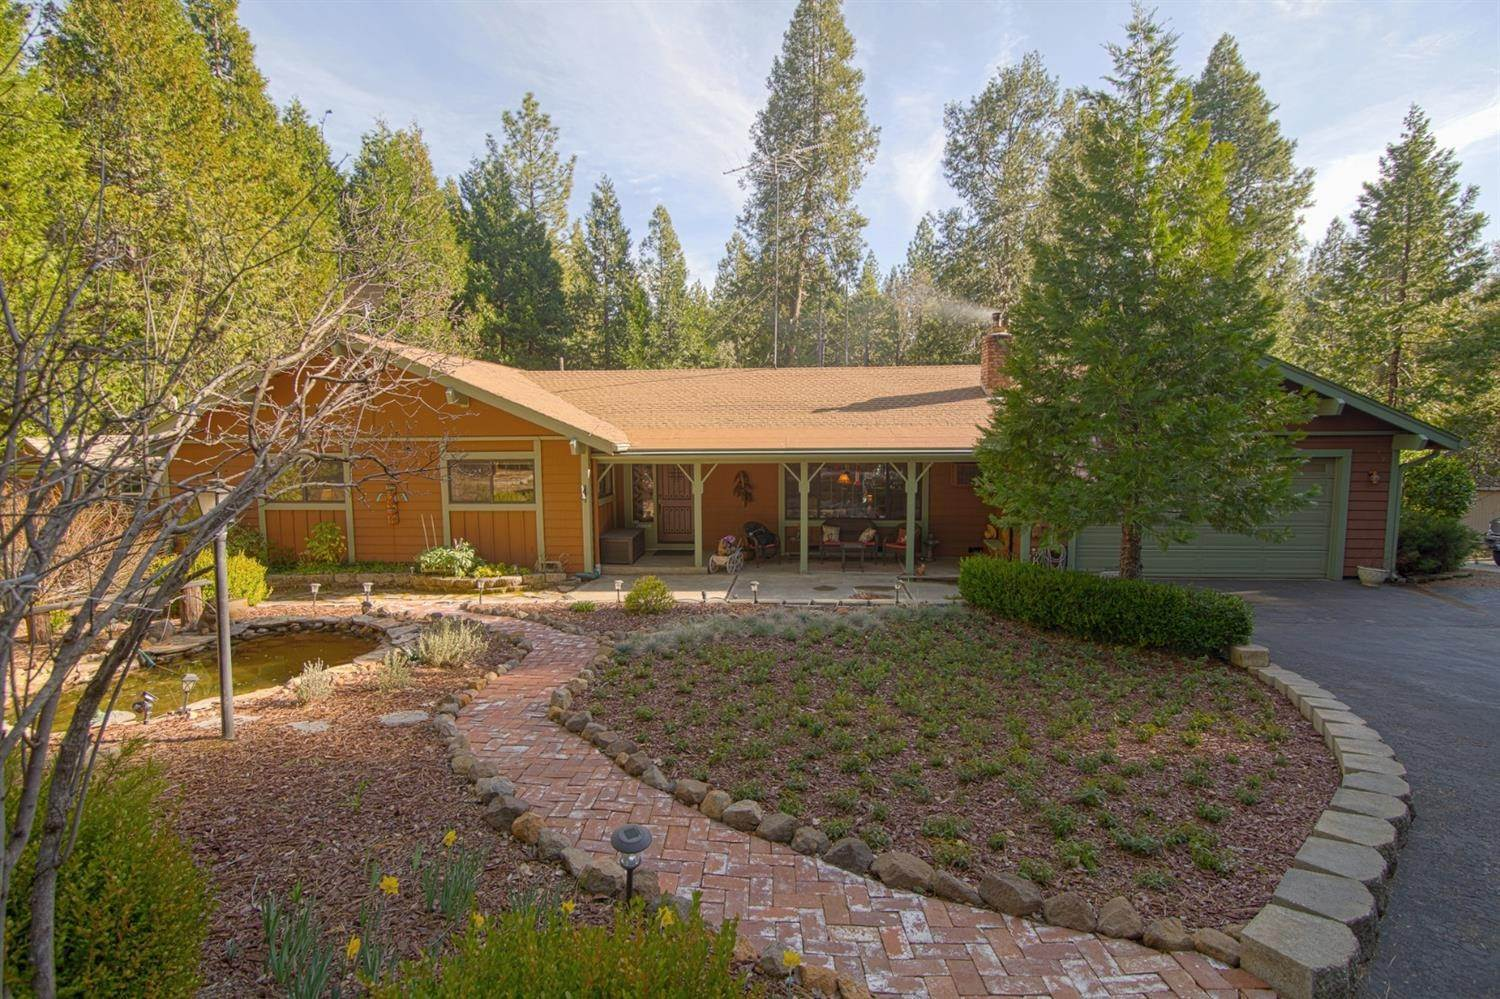 Single Family Homes for Active at 23140 Shake Ridge Road Volcano, California 95689 United States